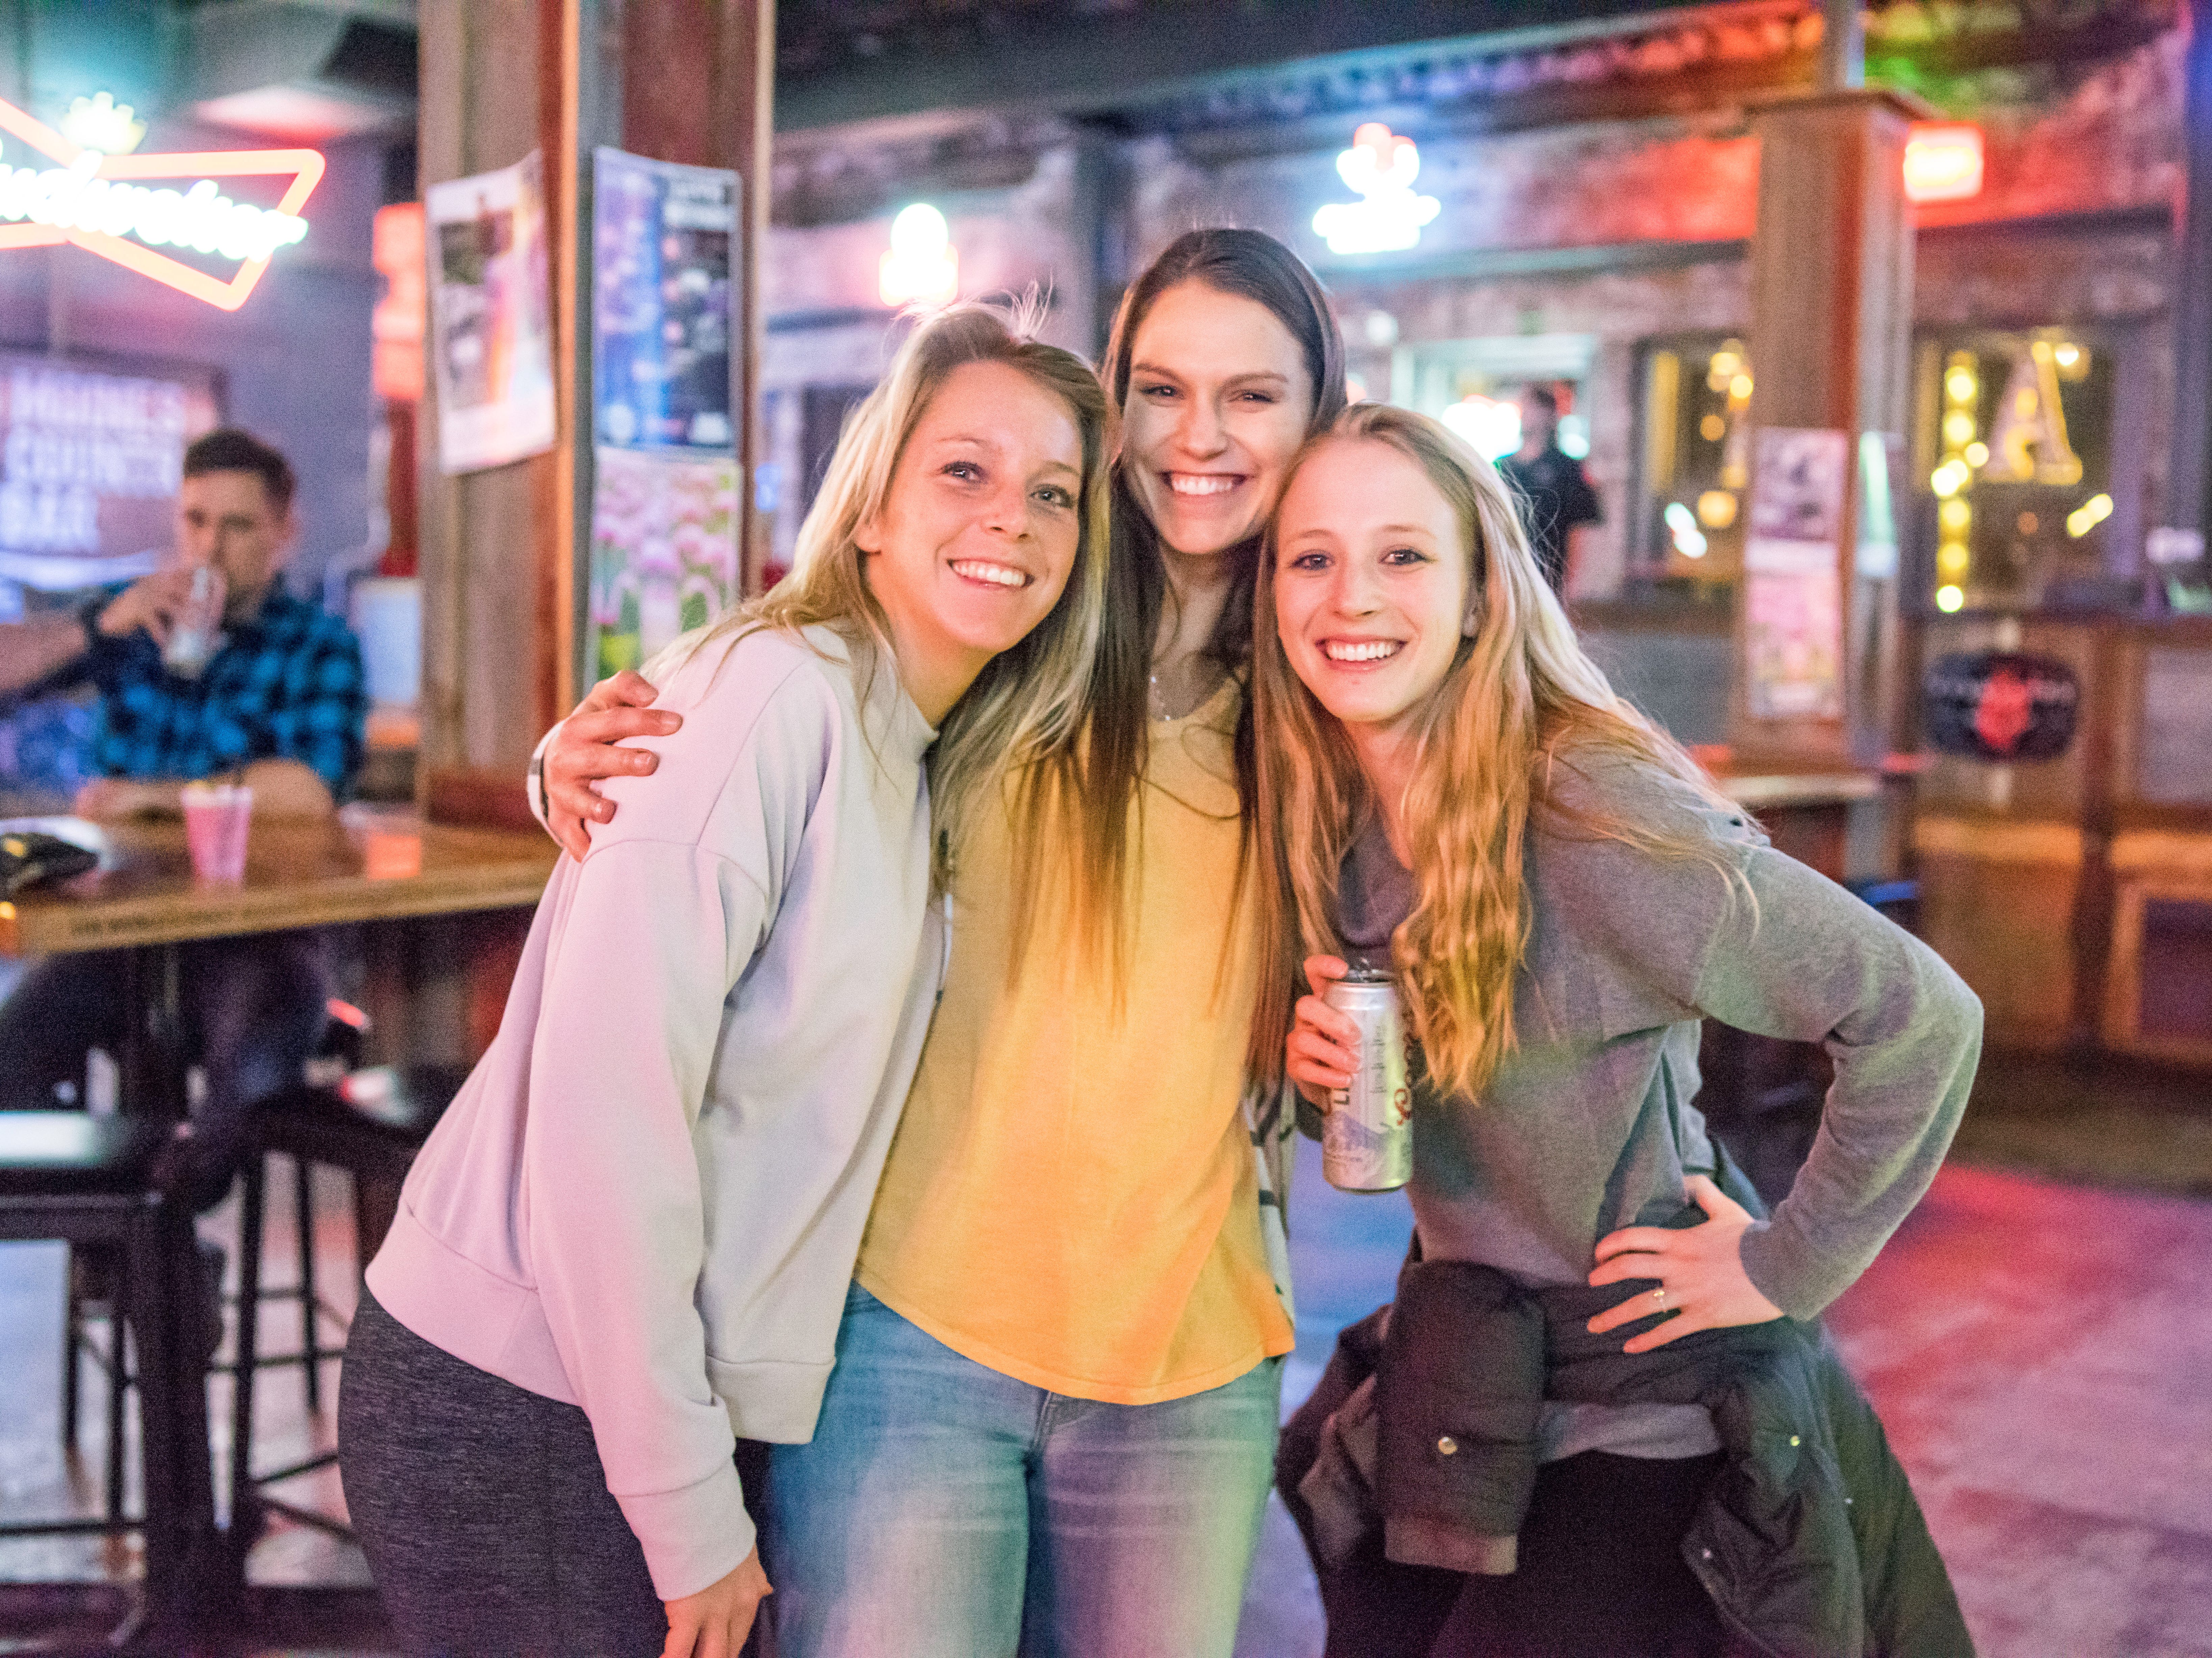 Ashley Olson, 25, Jenny Smith, 25, and Anne Reynolds, 25, all of Des Moines, having a fun time, Friday, March 15th, at Beer Can Alley.